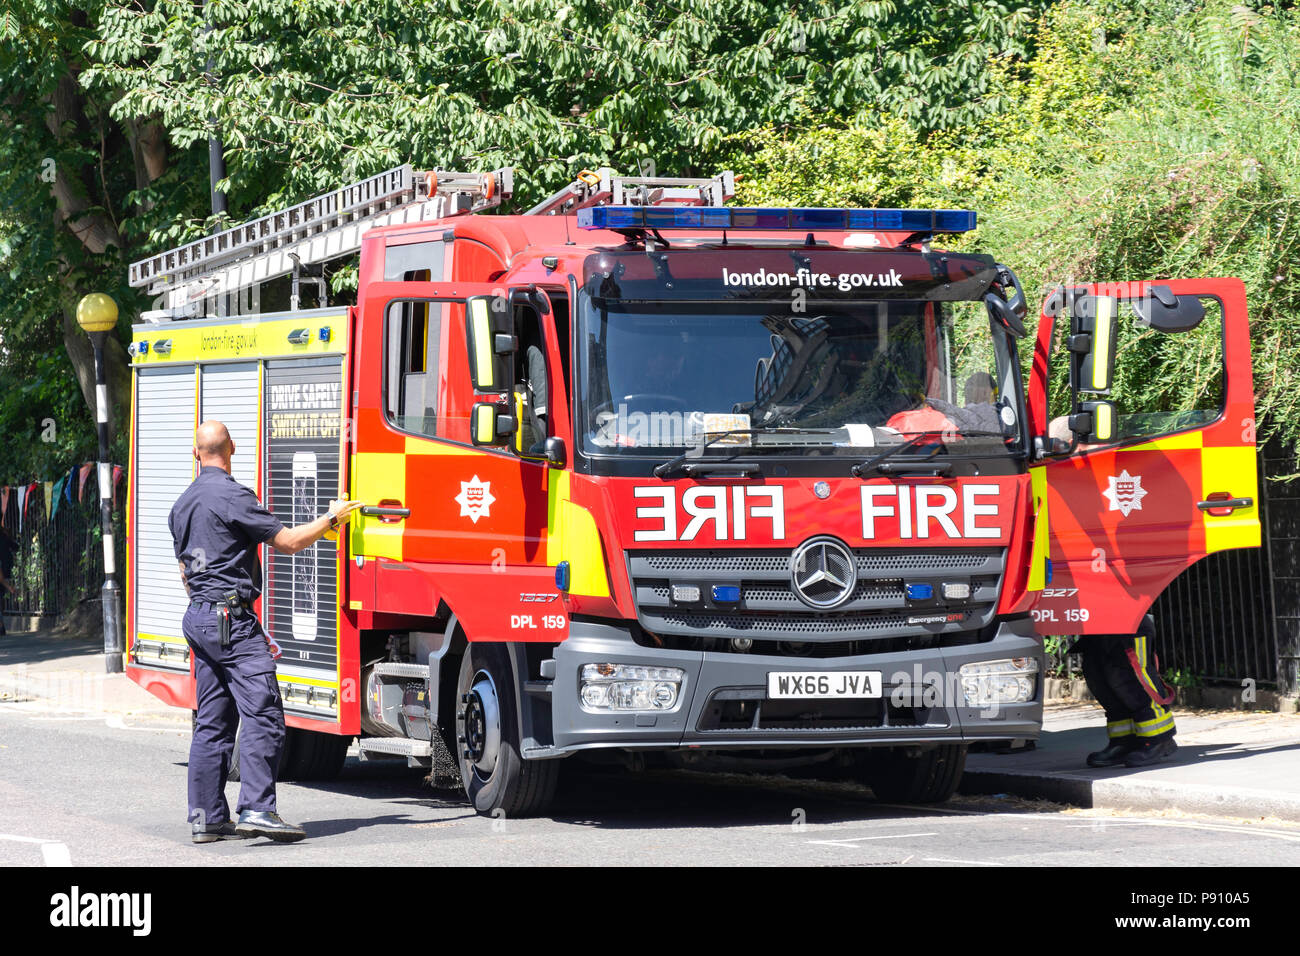 London Fire Brigade on call, Barbican, City of London, Greater London, England, United Kingdom - Stock Image